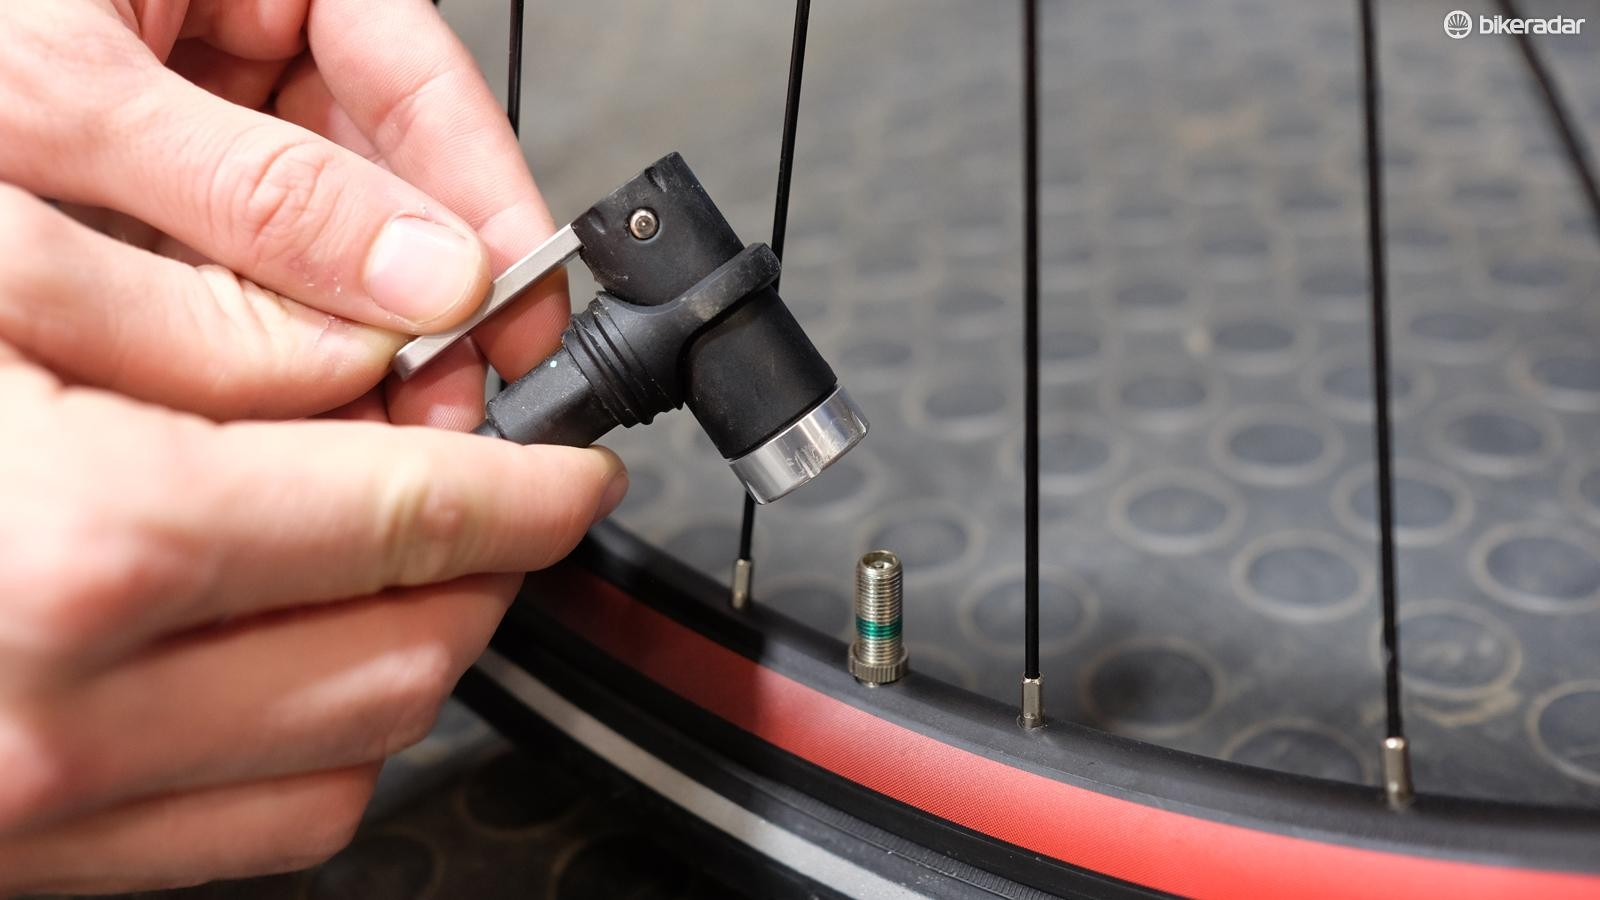 Keeping your tyres inflated is an essential part of bicycle maintenance